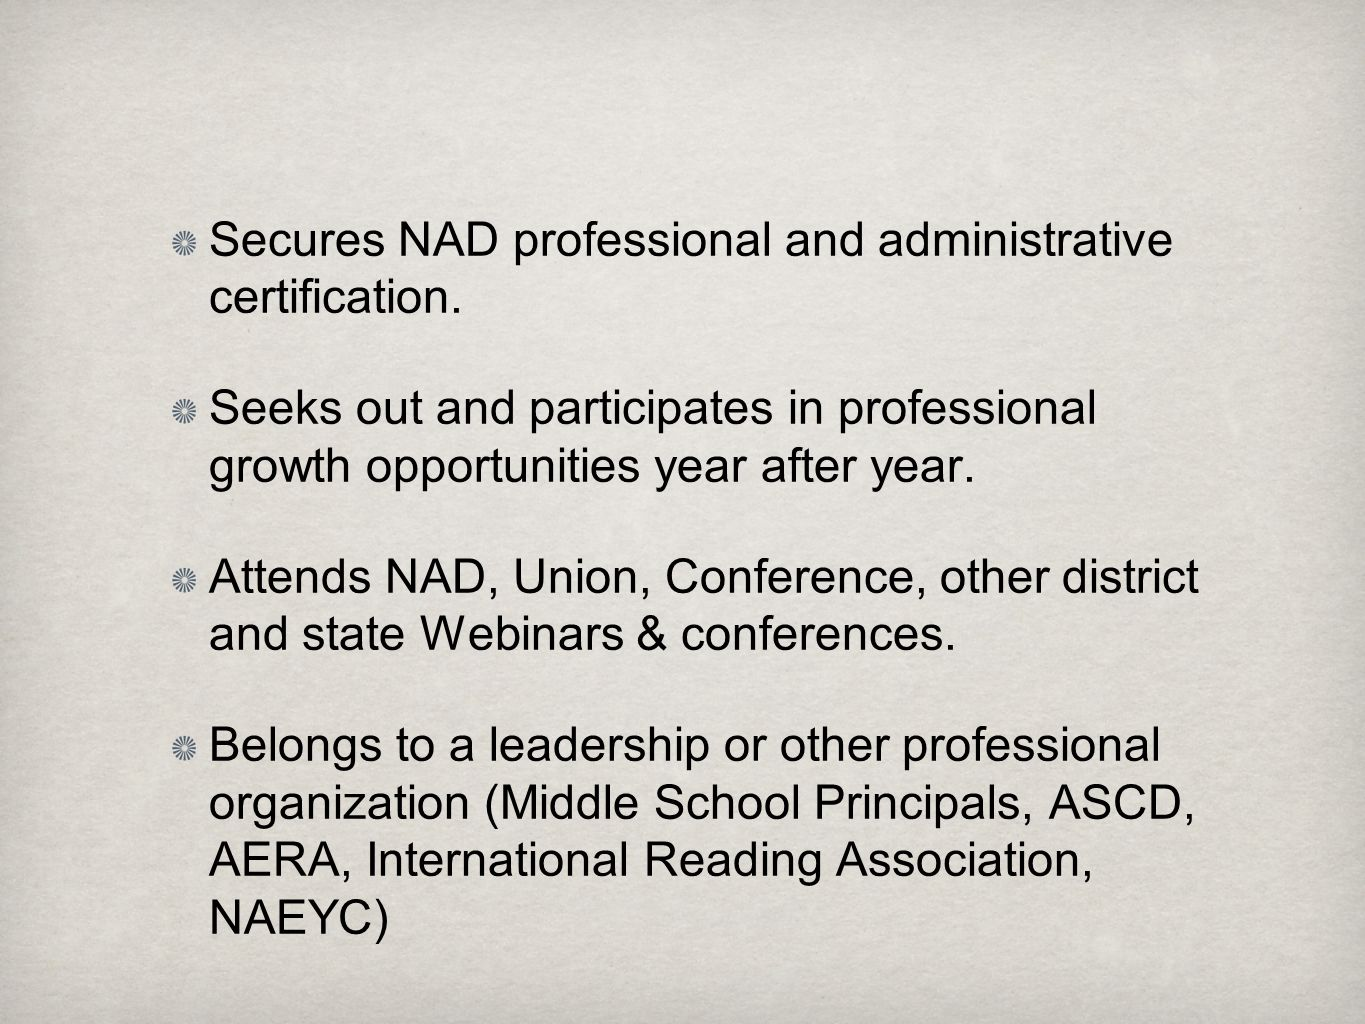 Secures NAD professional and administrative certification.